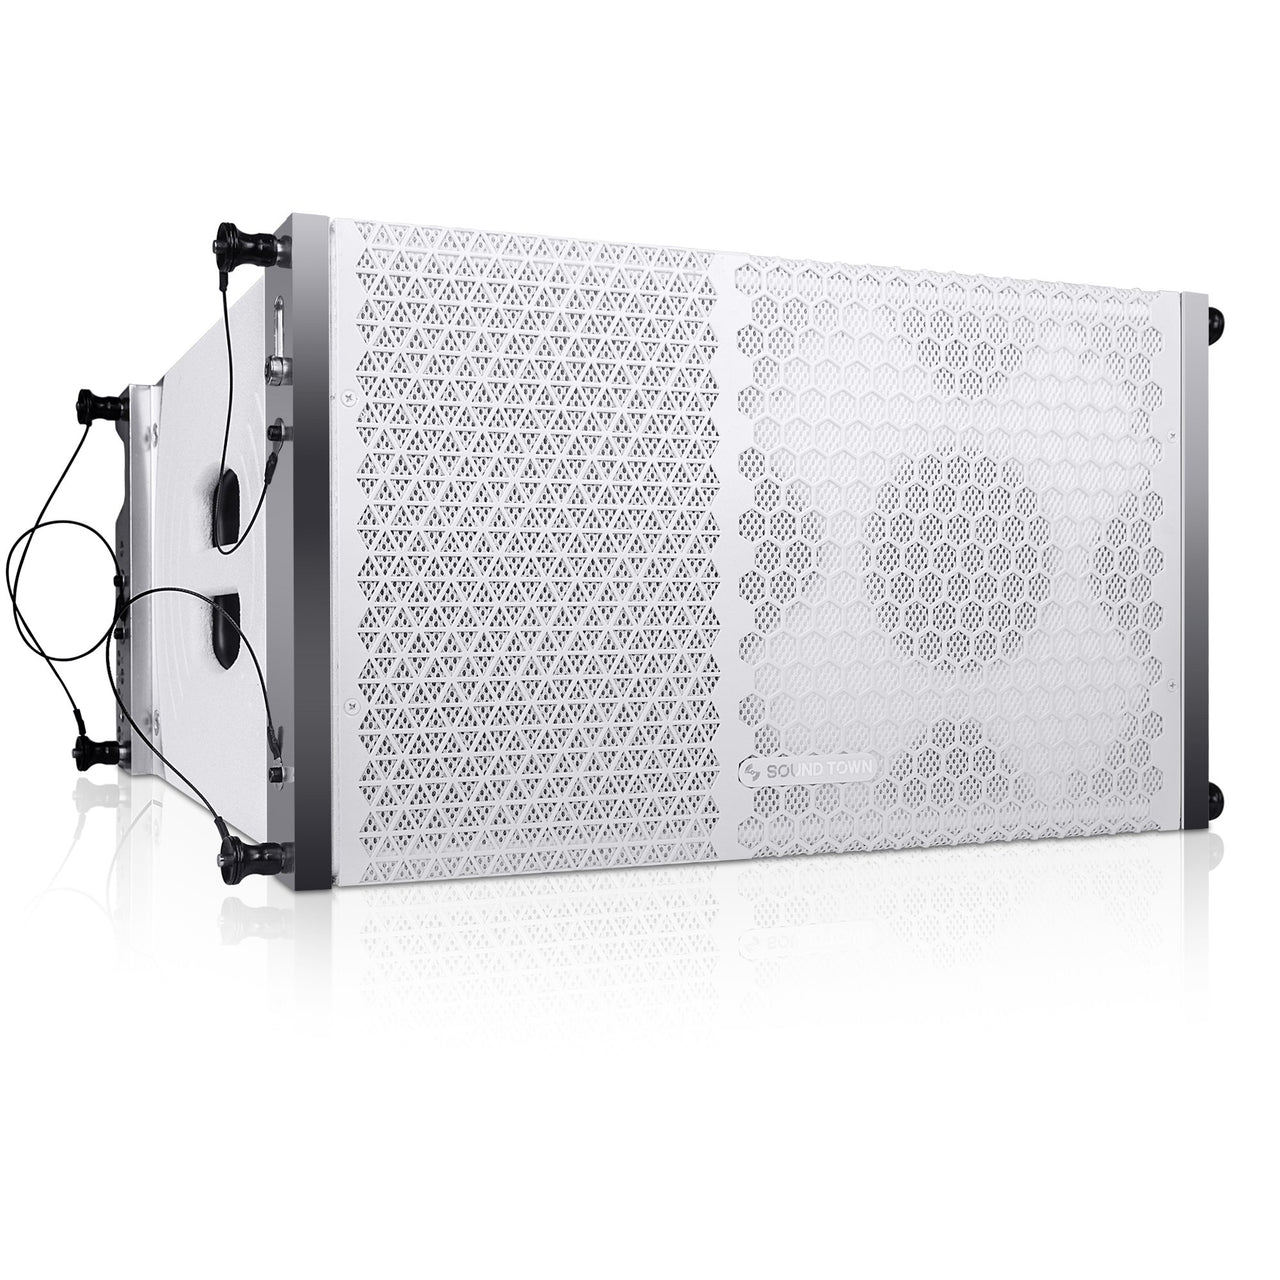 "Sound Town ZETHUS-110W ZETHUS Series 10"" Passive Two-Way Line Array Loudspeaker System with Titanium Compression Driver, White - Right Panel"